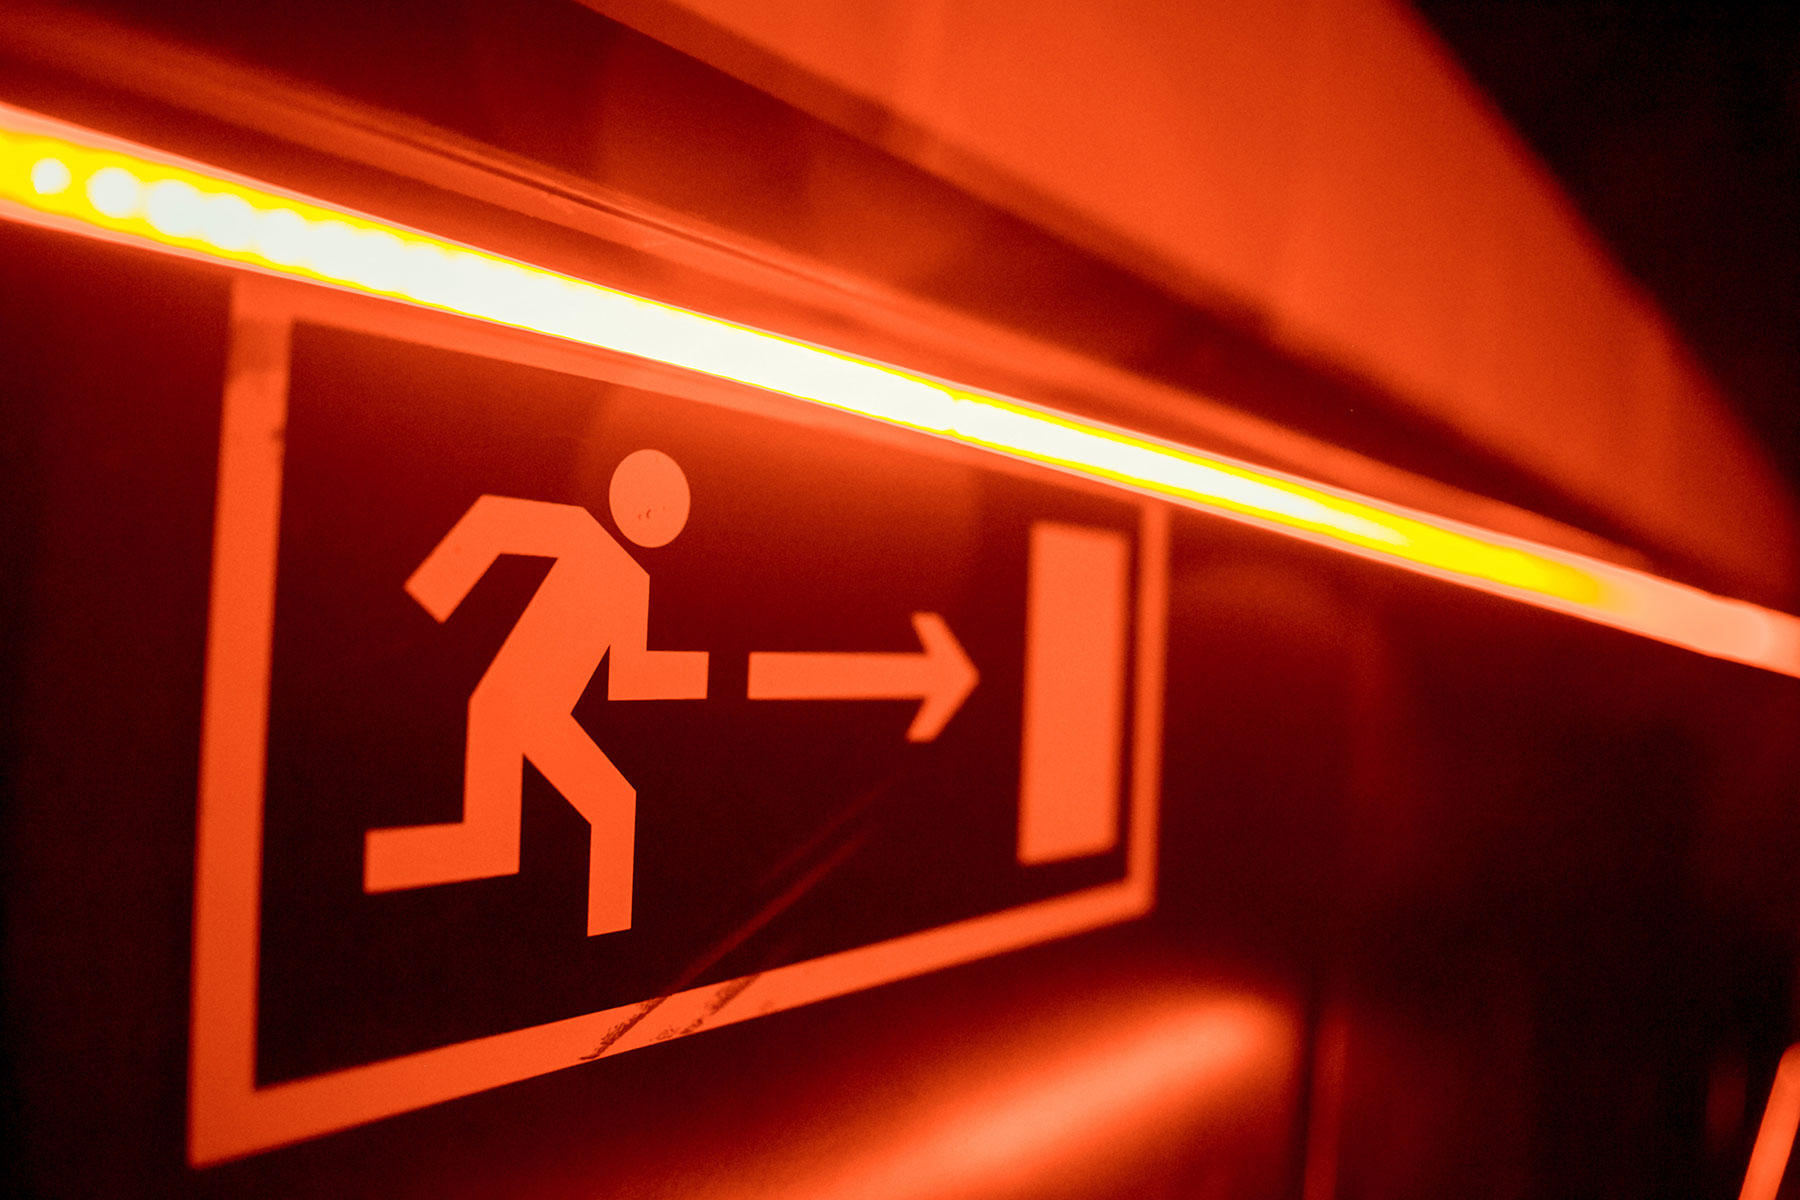 How Visitor Management Systems Aid Emergency Evacuations - SwipedOn